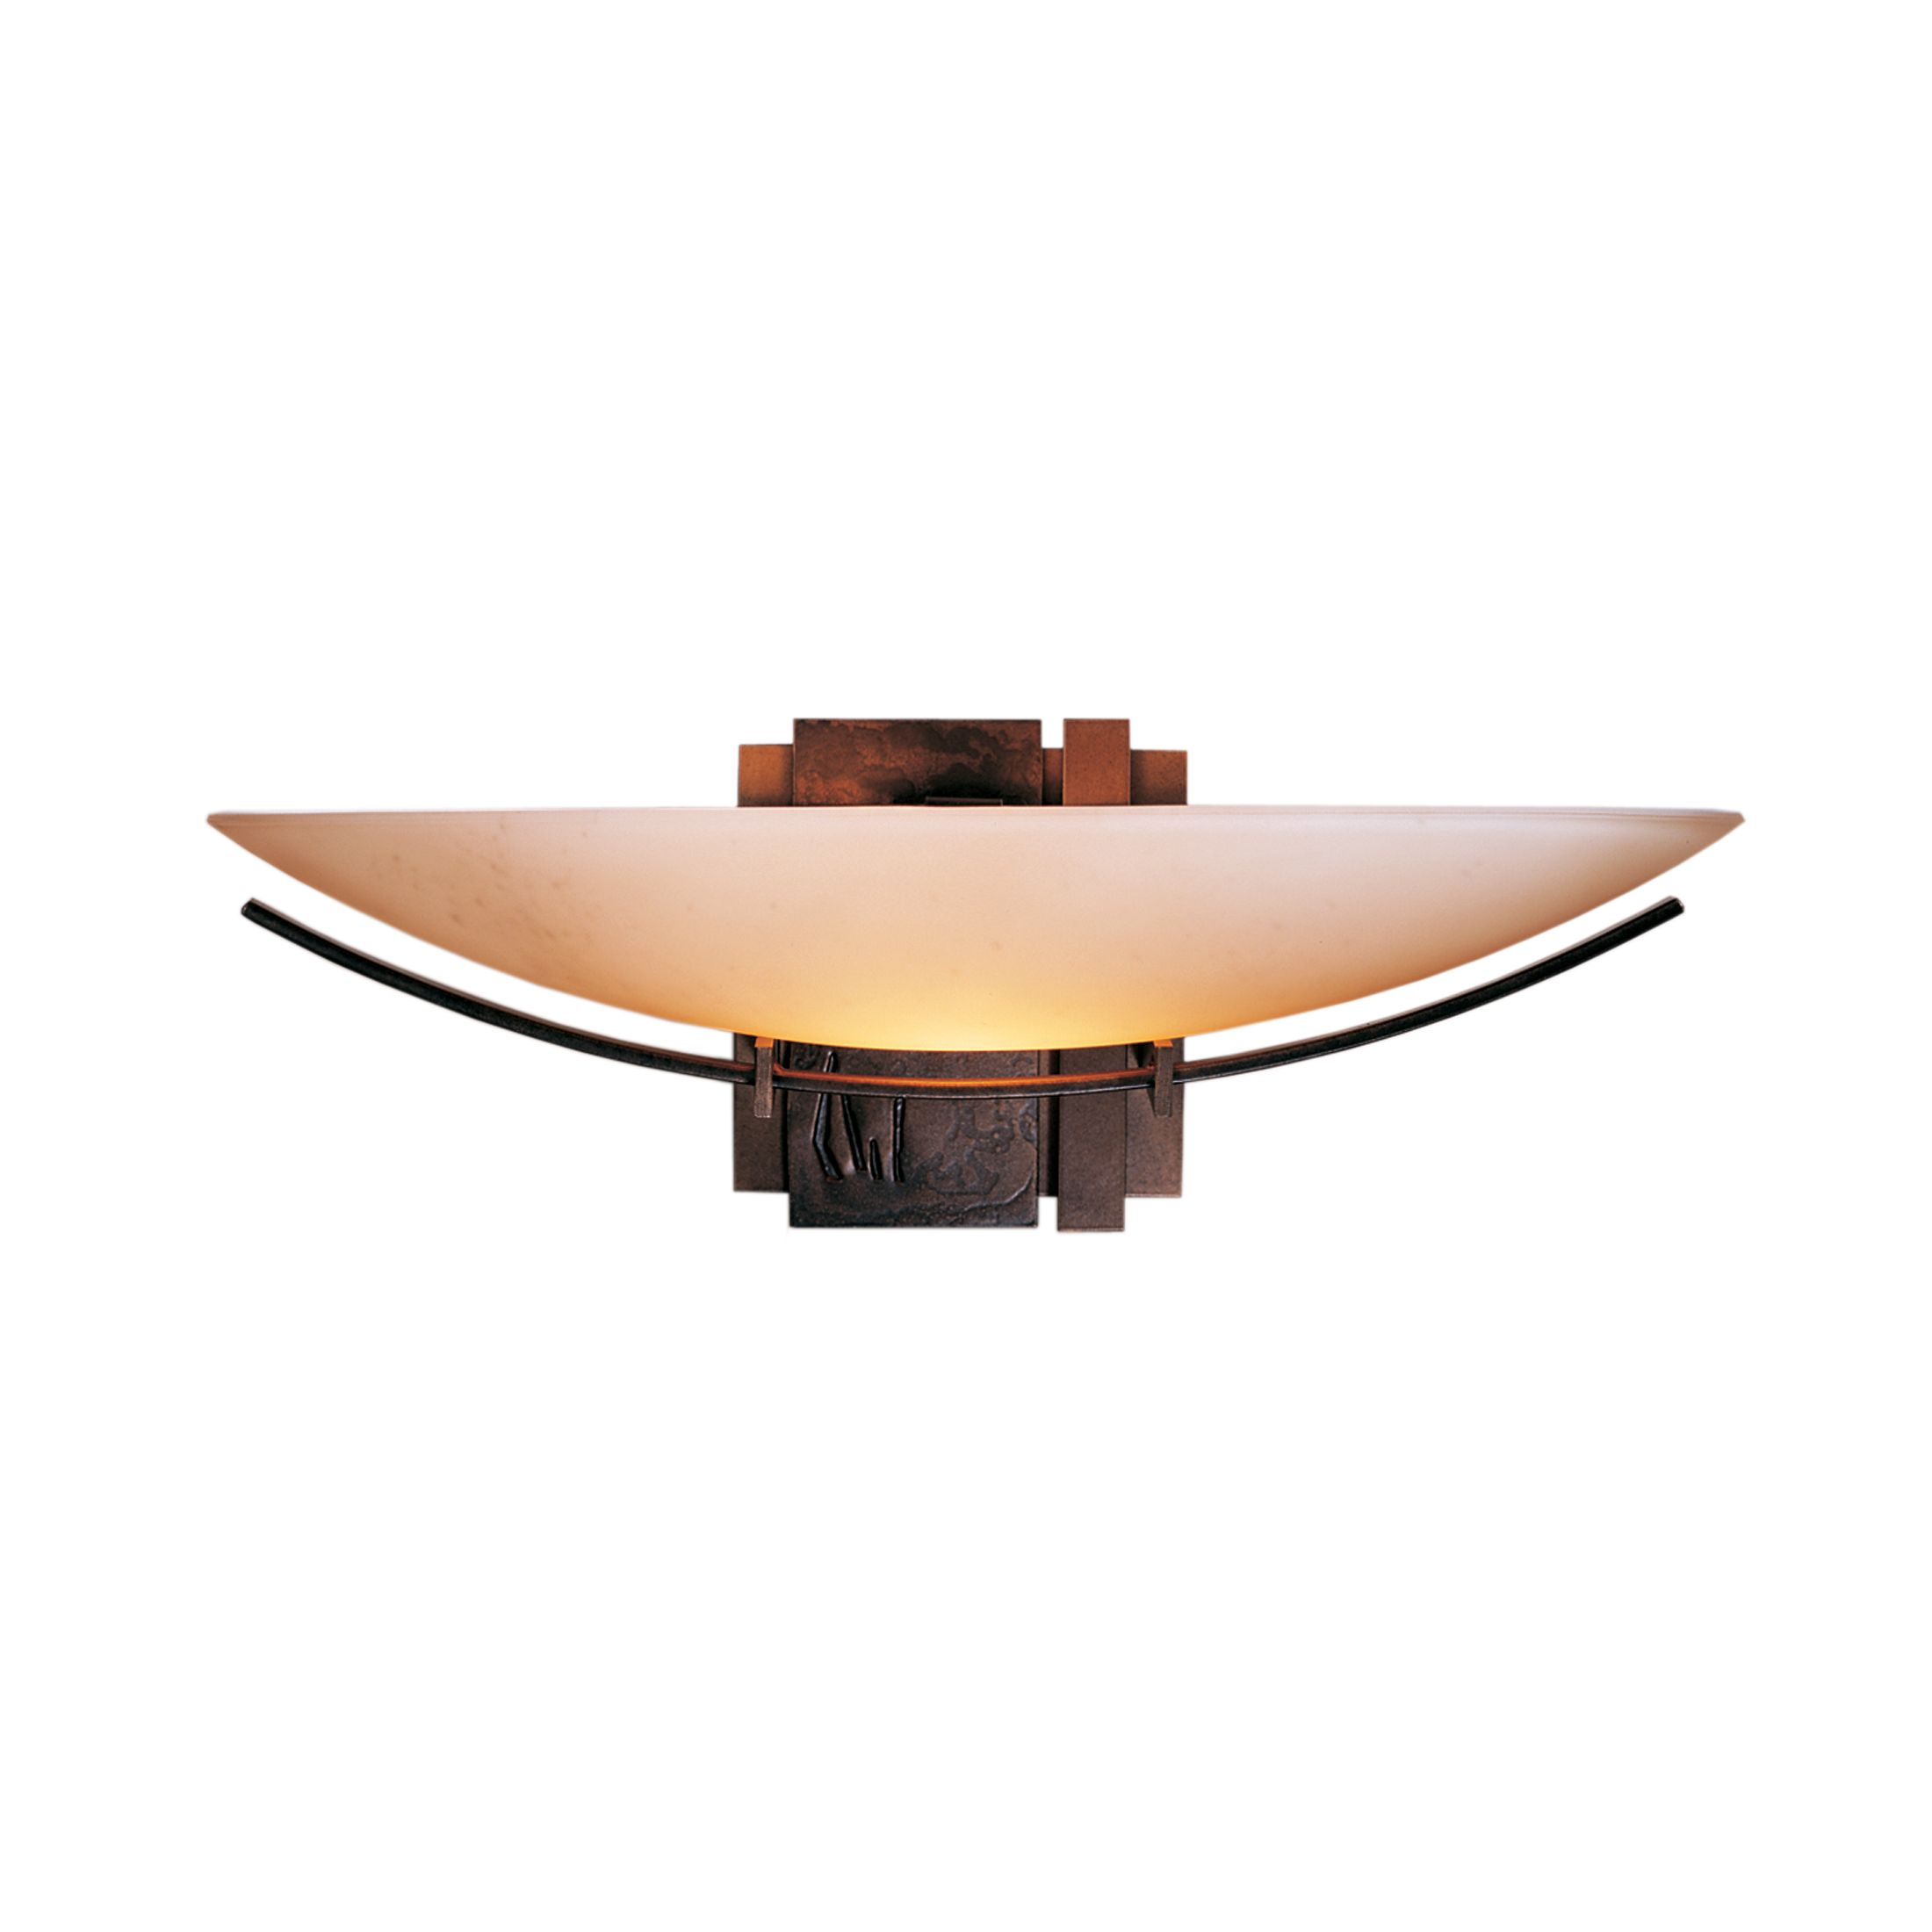 Thumbnail for Oval Impressions Sconce